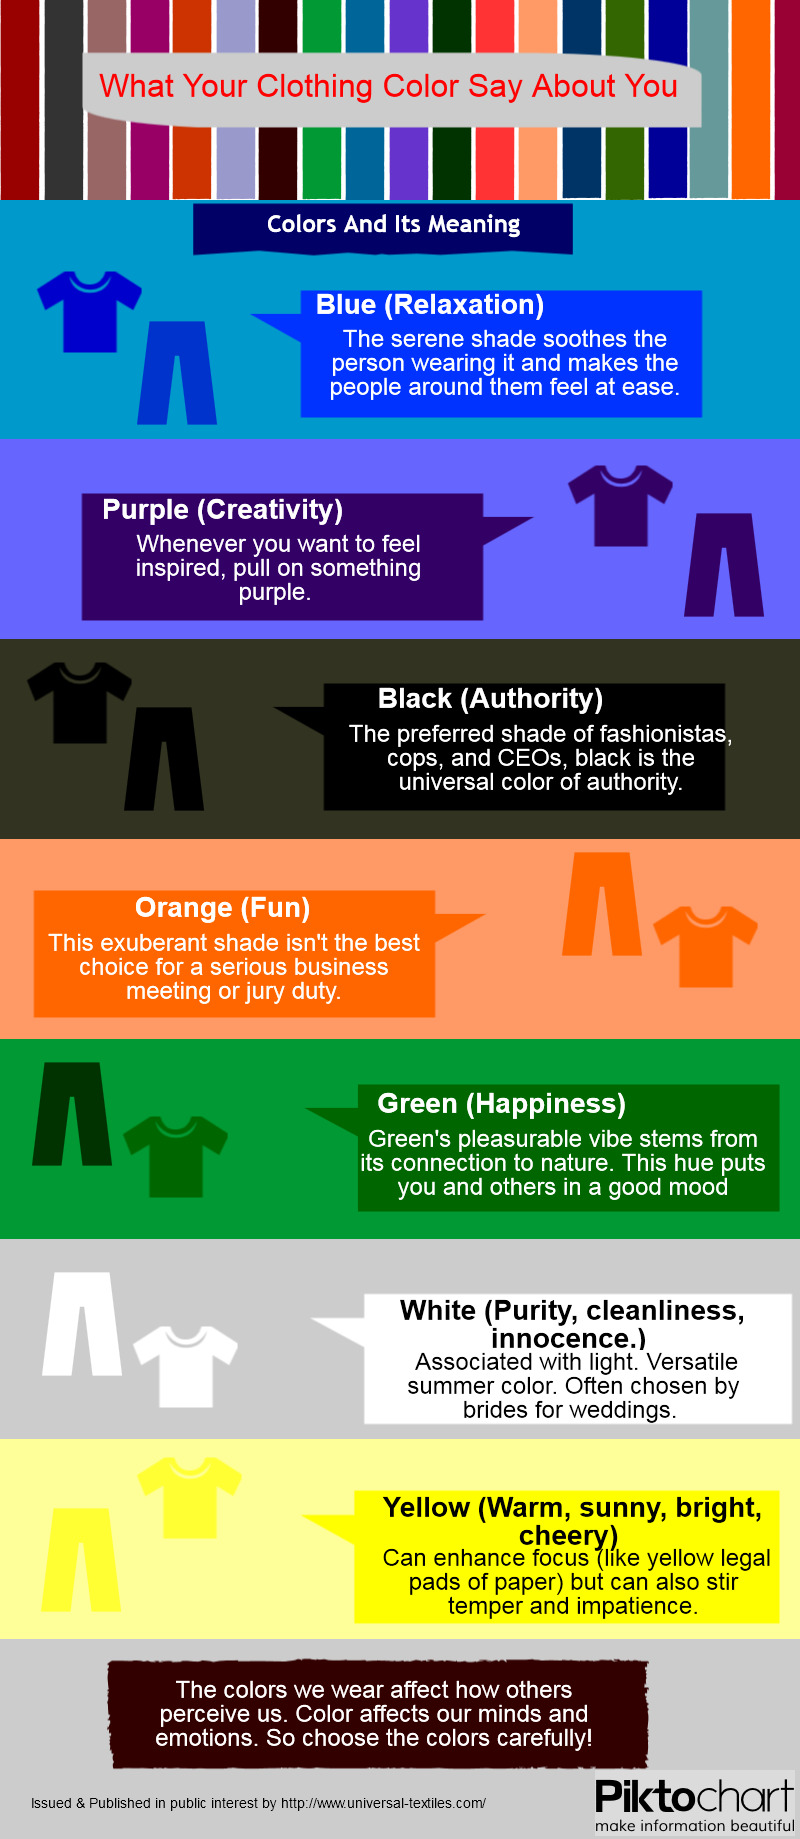 what-your-clothing-color-say-about-you_5215fa976d696